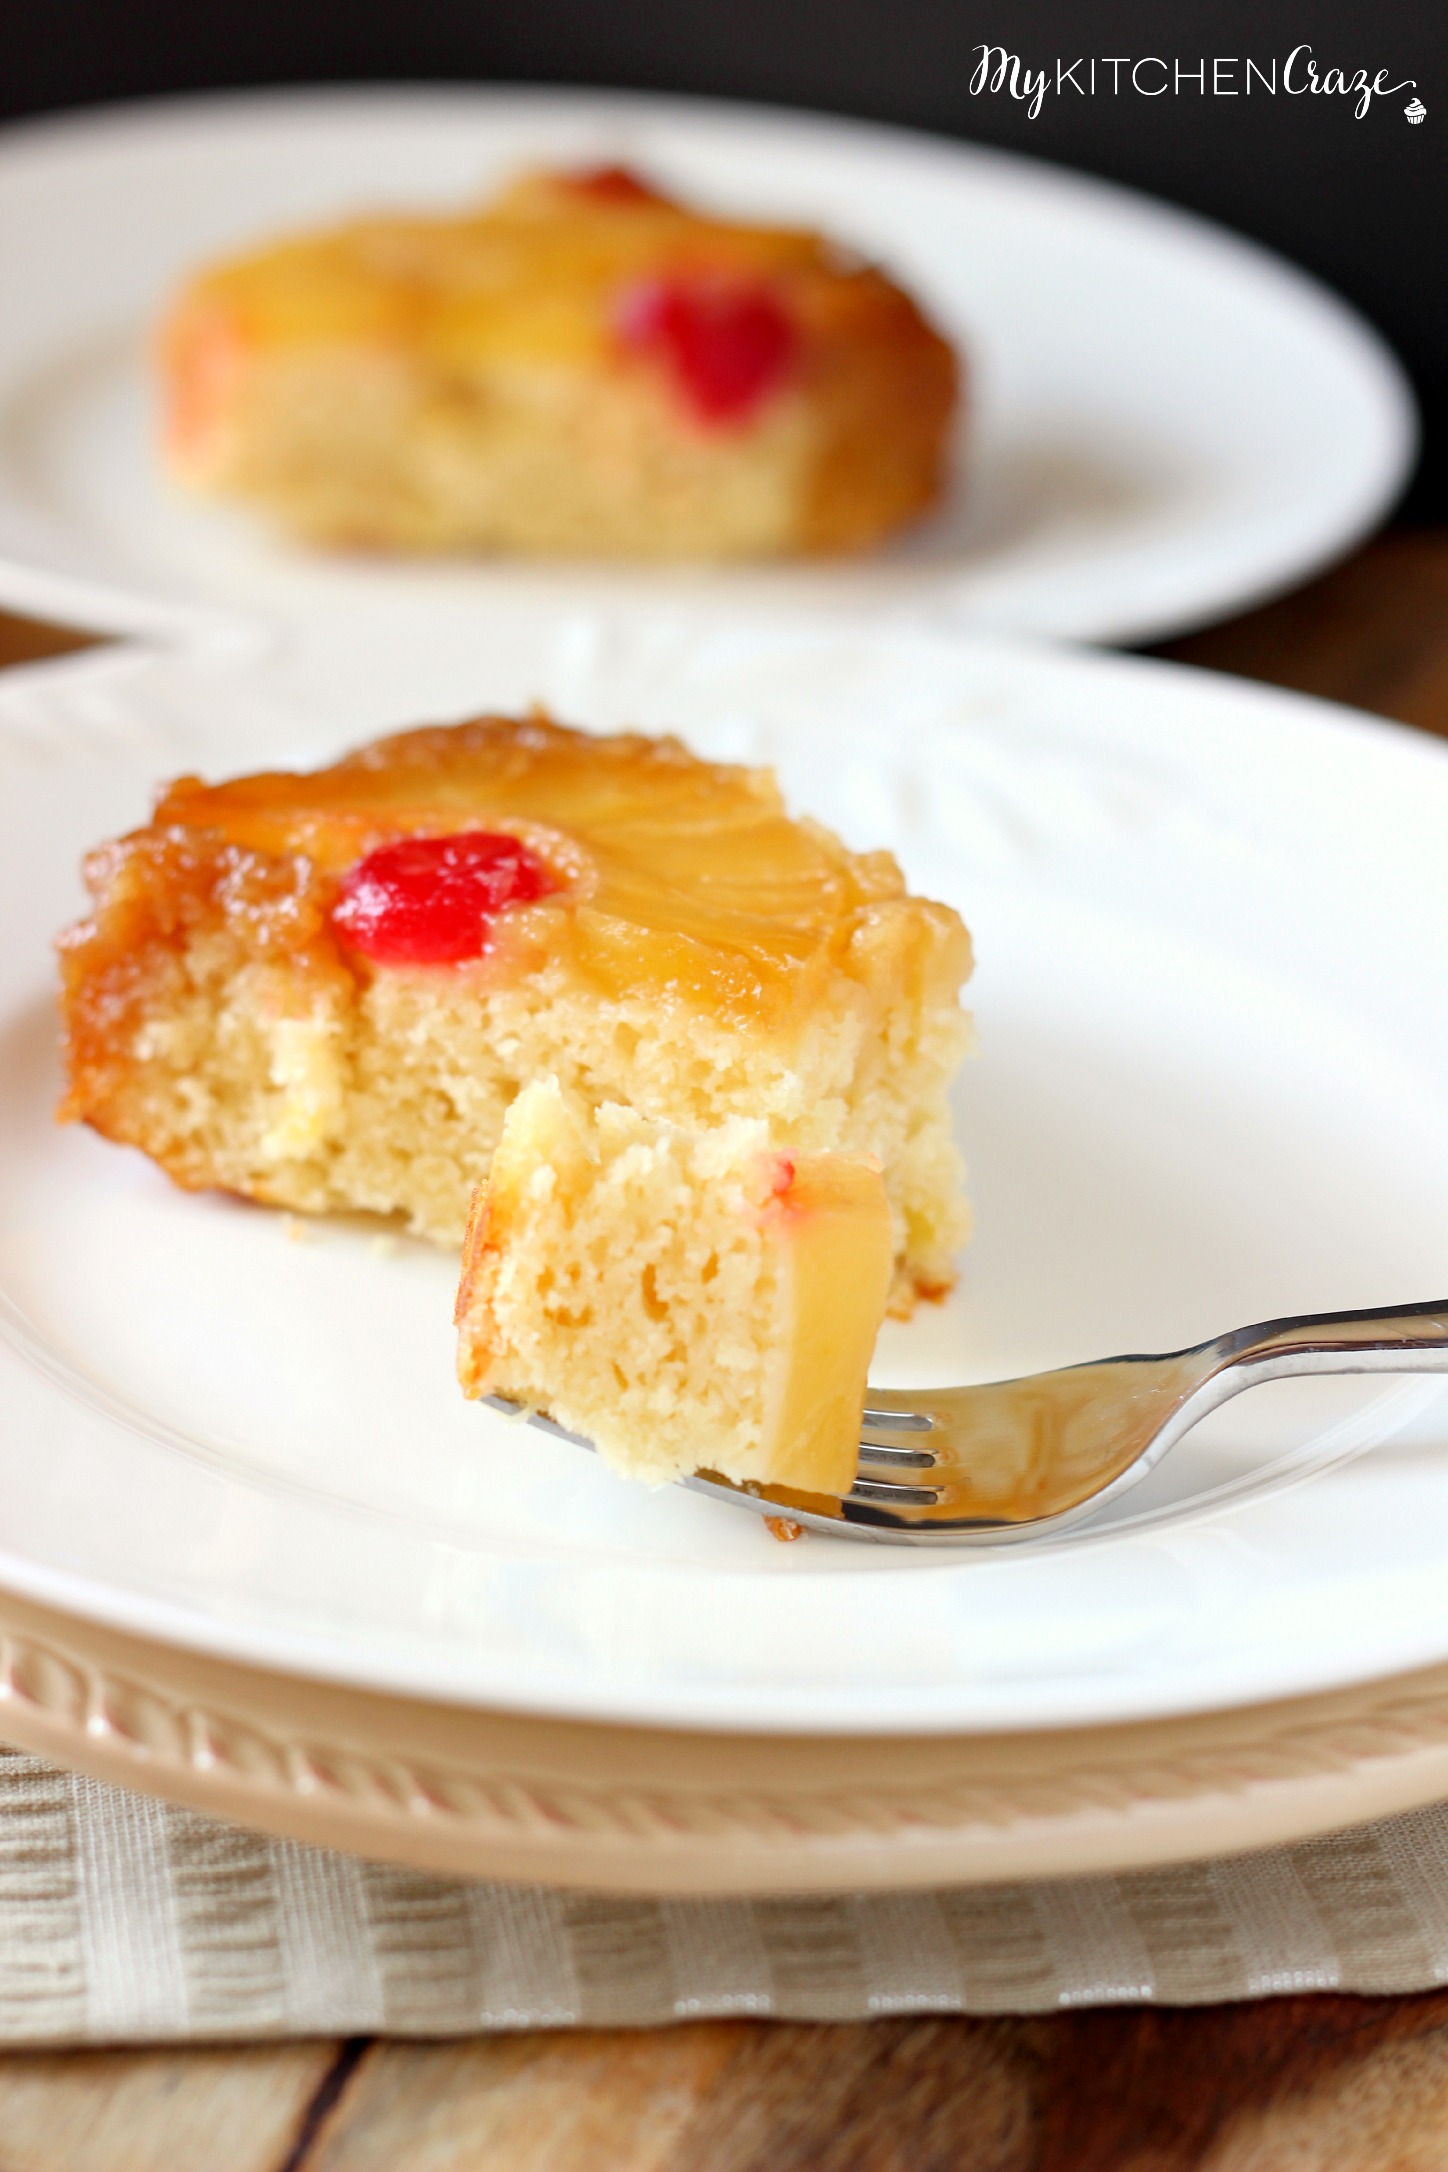 Pineapple Upside Down Cake My Kitchen Craze